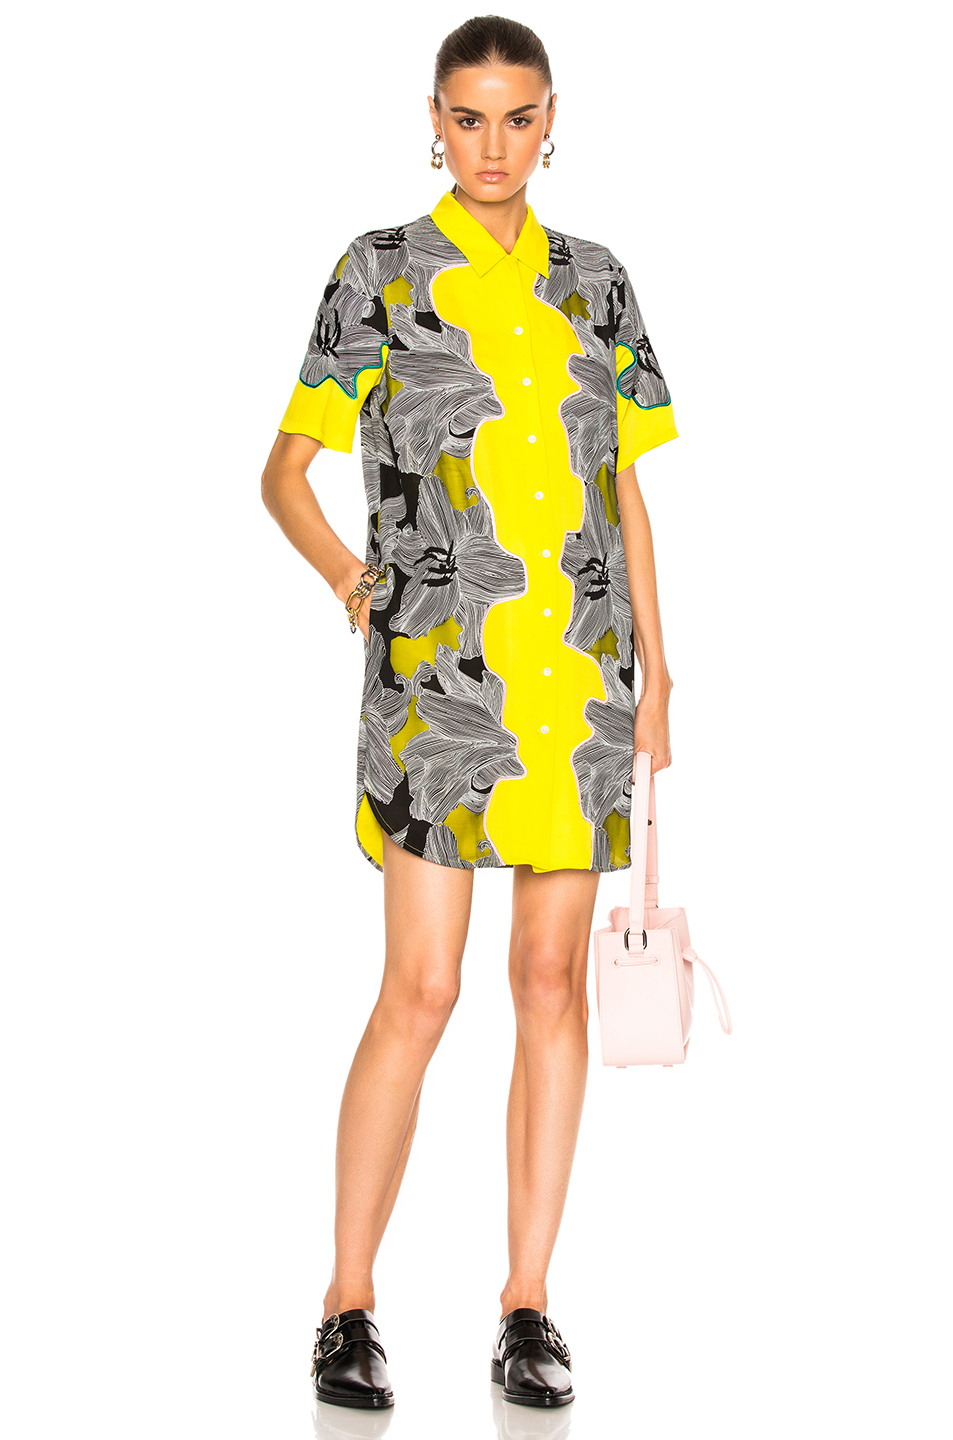 3.1 phillip lim Short Sleeve Surf Floral Dress in Black,Floral,Yellow